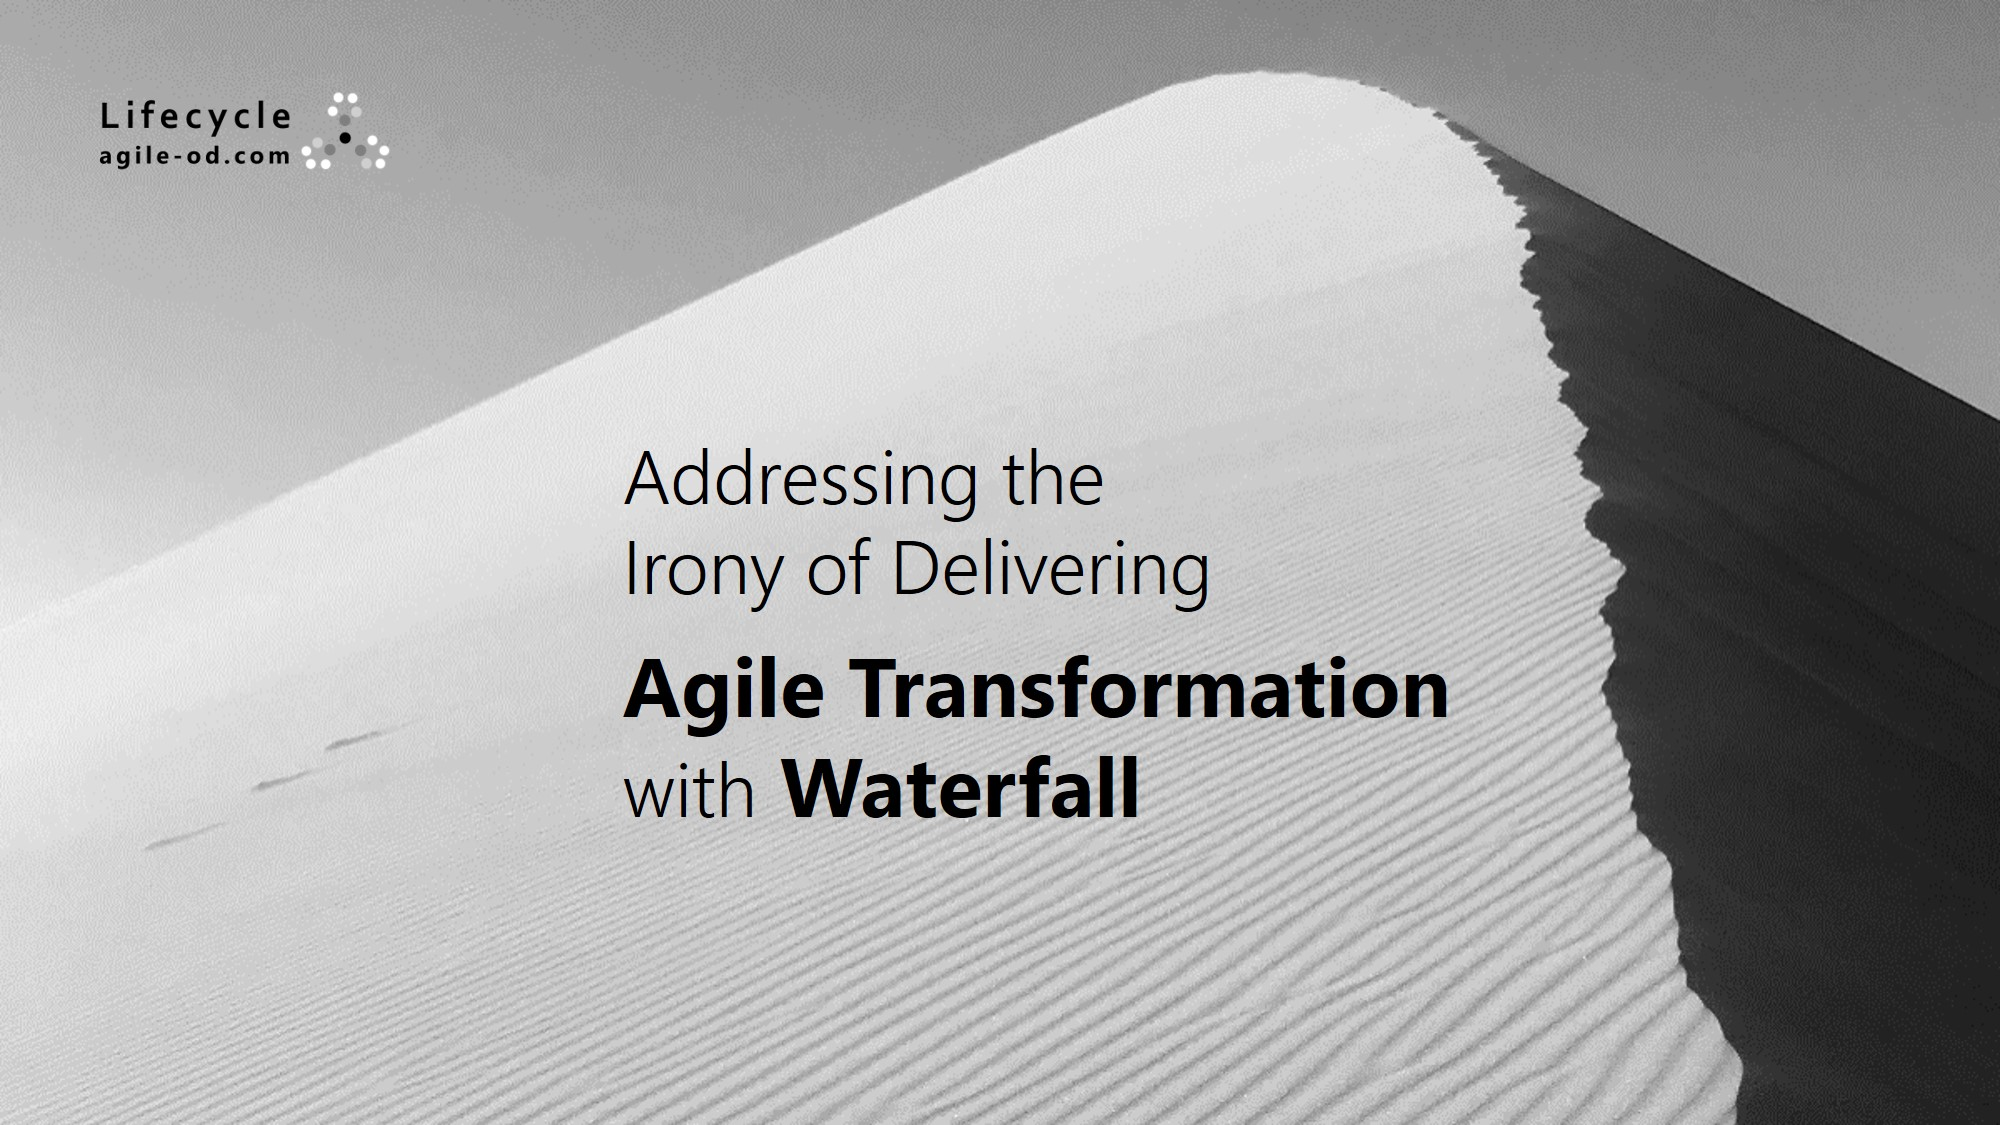 Addressing the Irony of Delivering Agile Transformation with Waterfall - agile-od.com